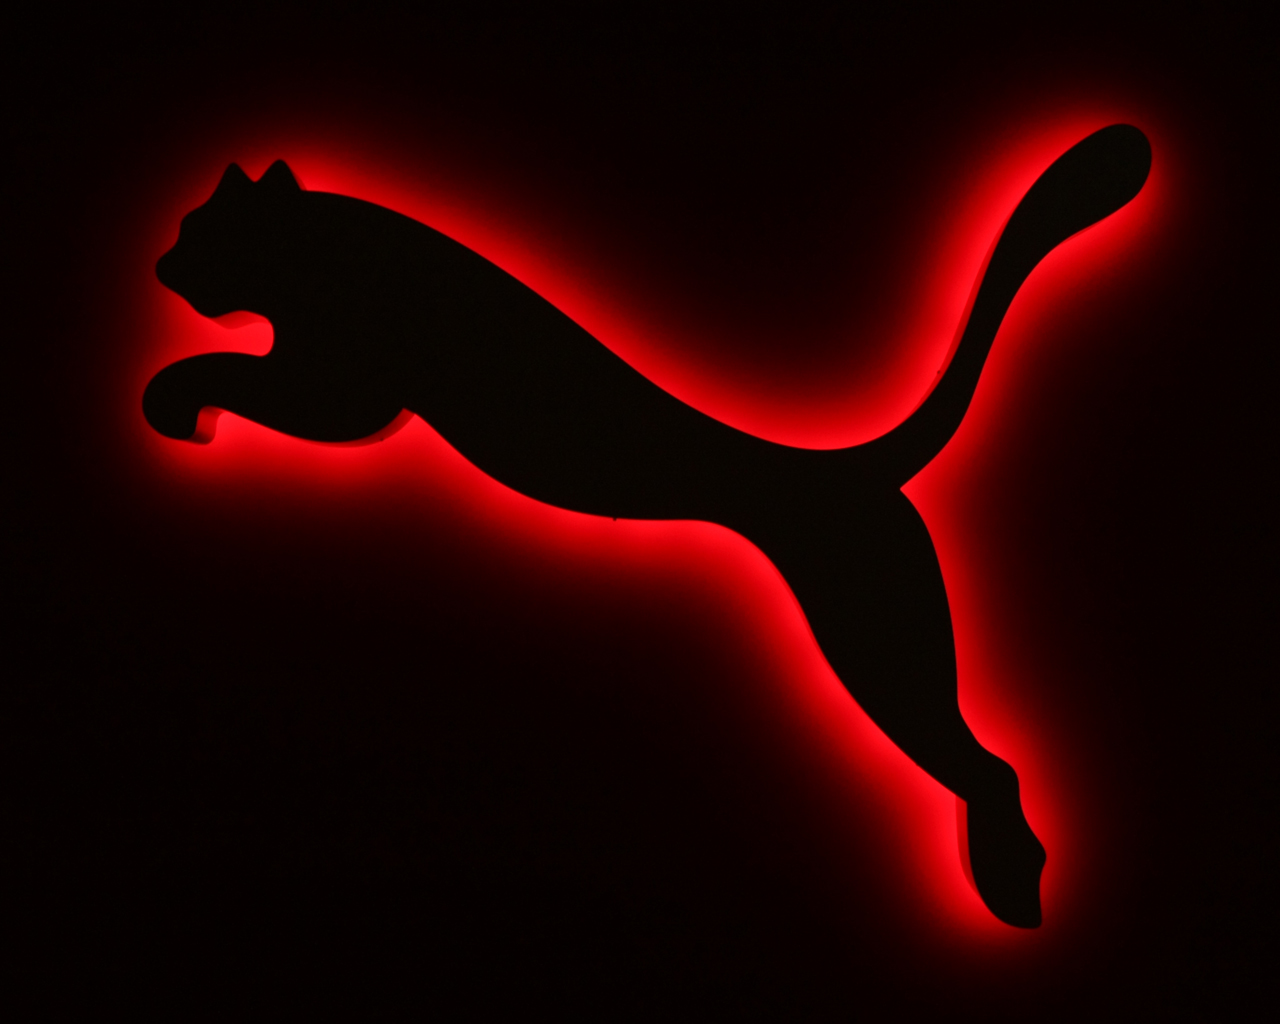 Beautiful HD Wallpapers: Puma HD Wallpaper